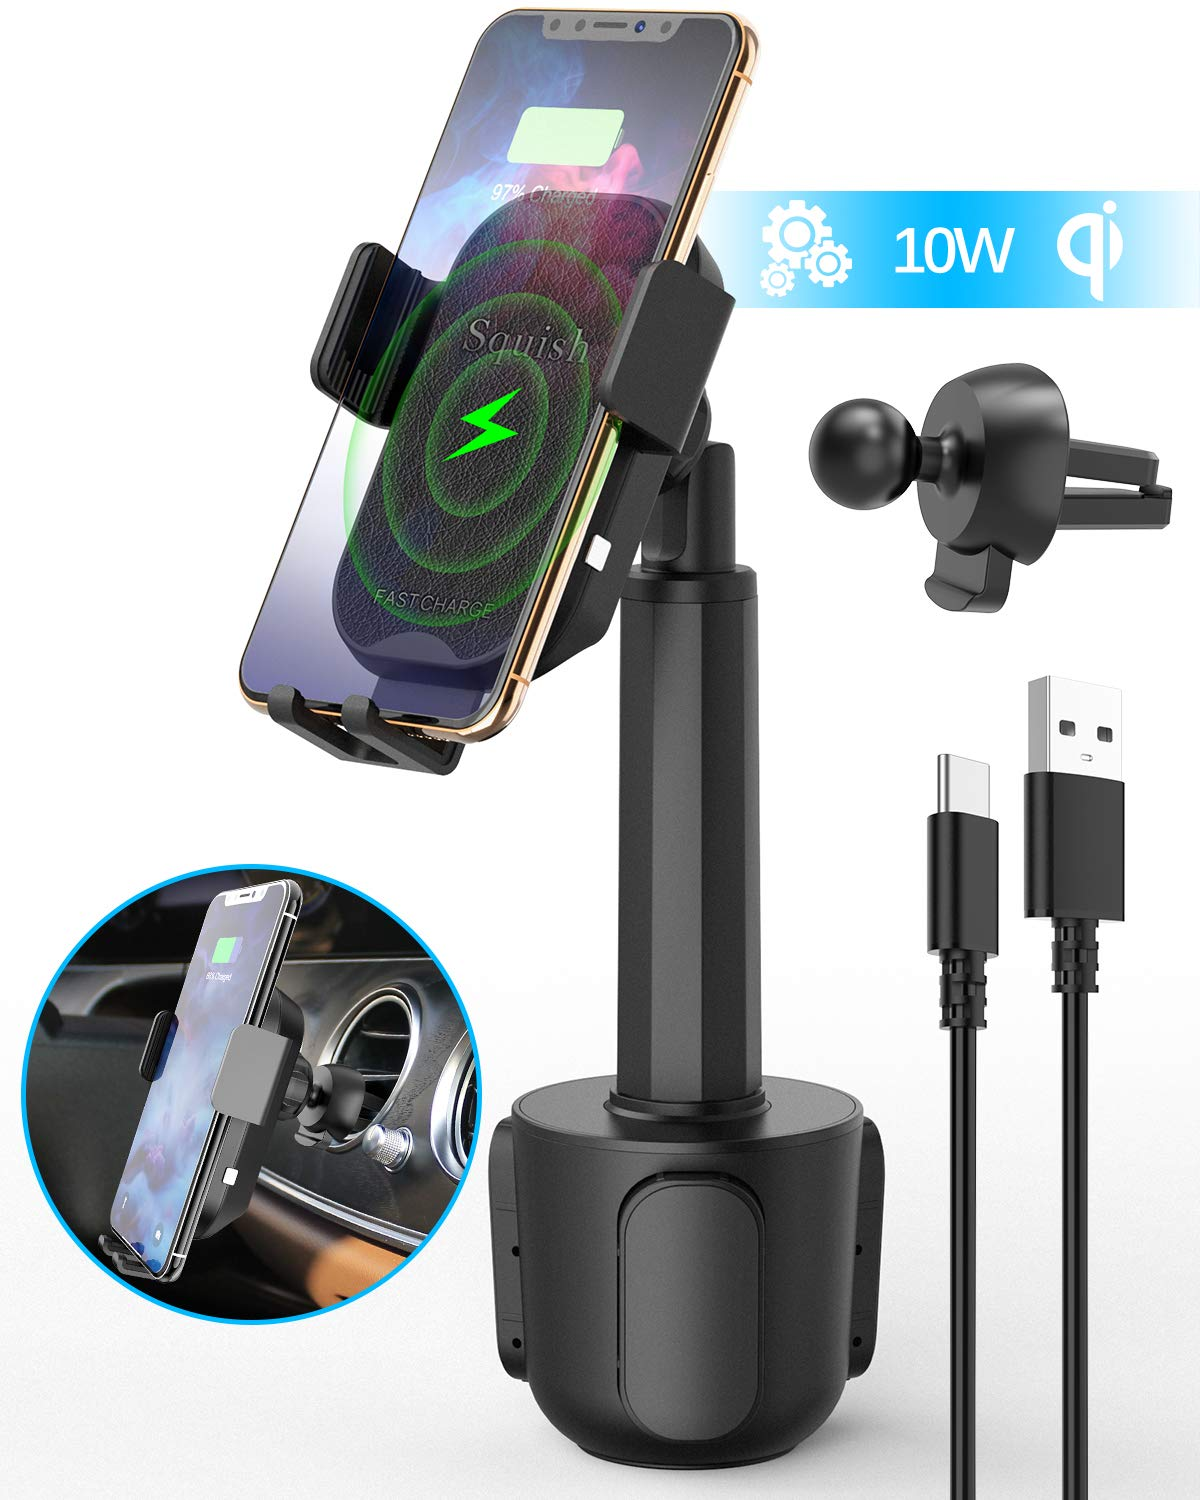 Wireless Car Charger, Squish 2-in-1 Universal Cell Phone Holder Cup Holder Phone Mount Car Air Vent Holder for iPhone, Samsung, Moto, Huawei, Nokia, LG, Smartphones (7.6 inches) by Squish